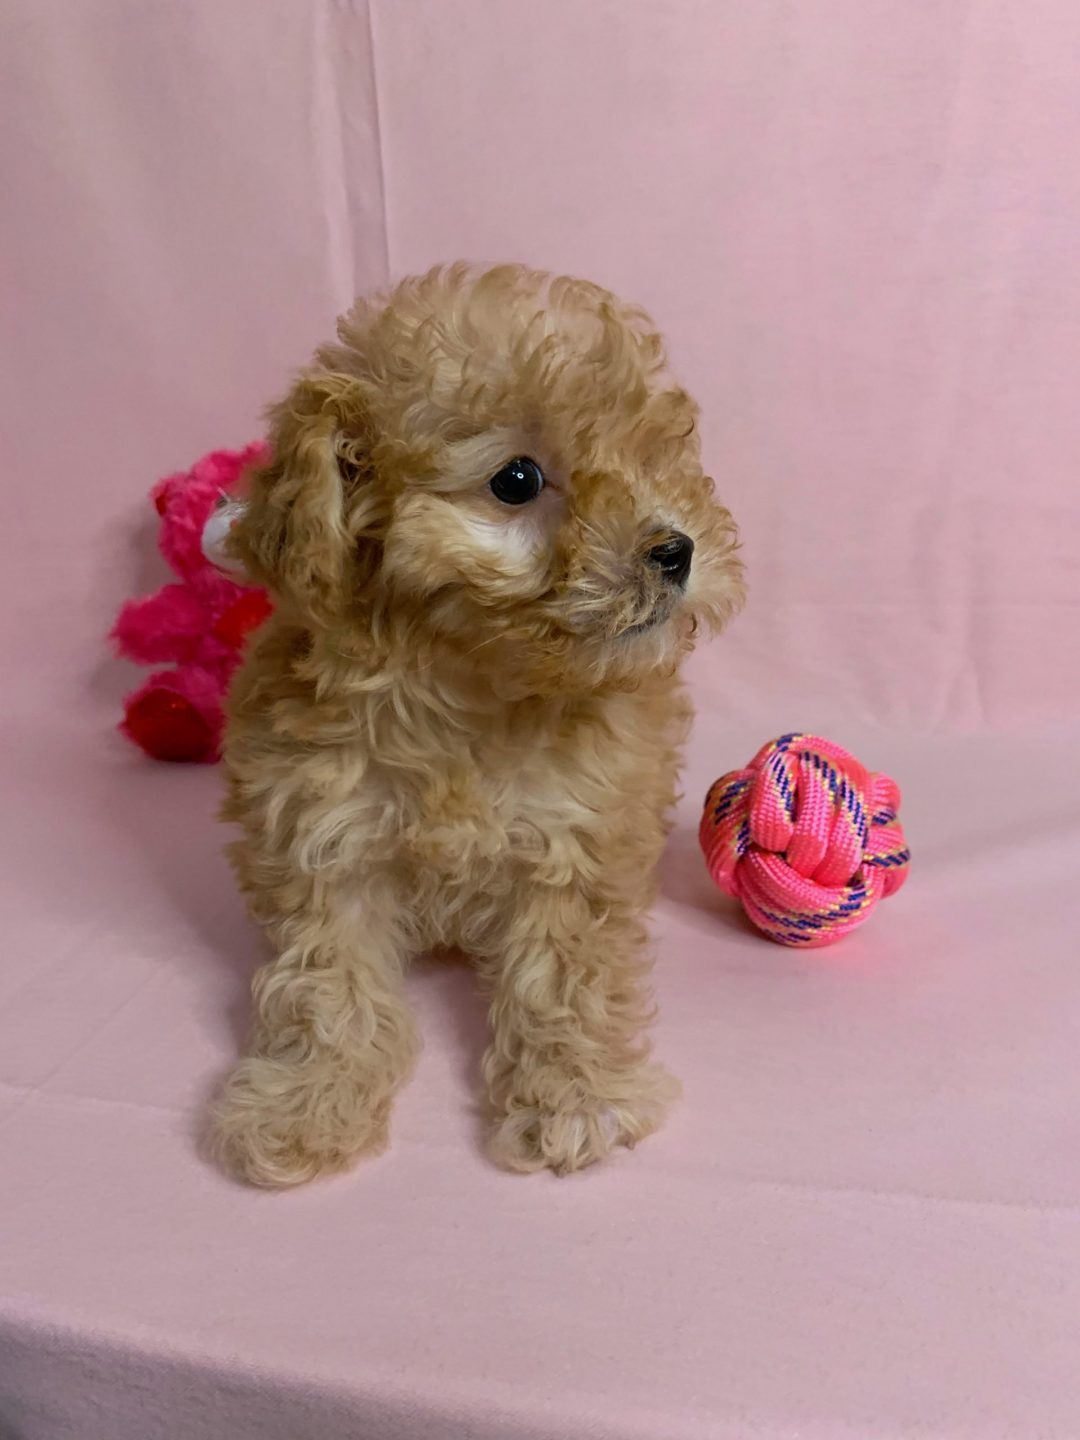 Hazel - female Malti Poo puppy